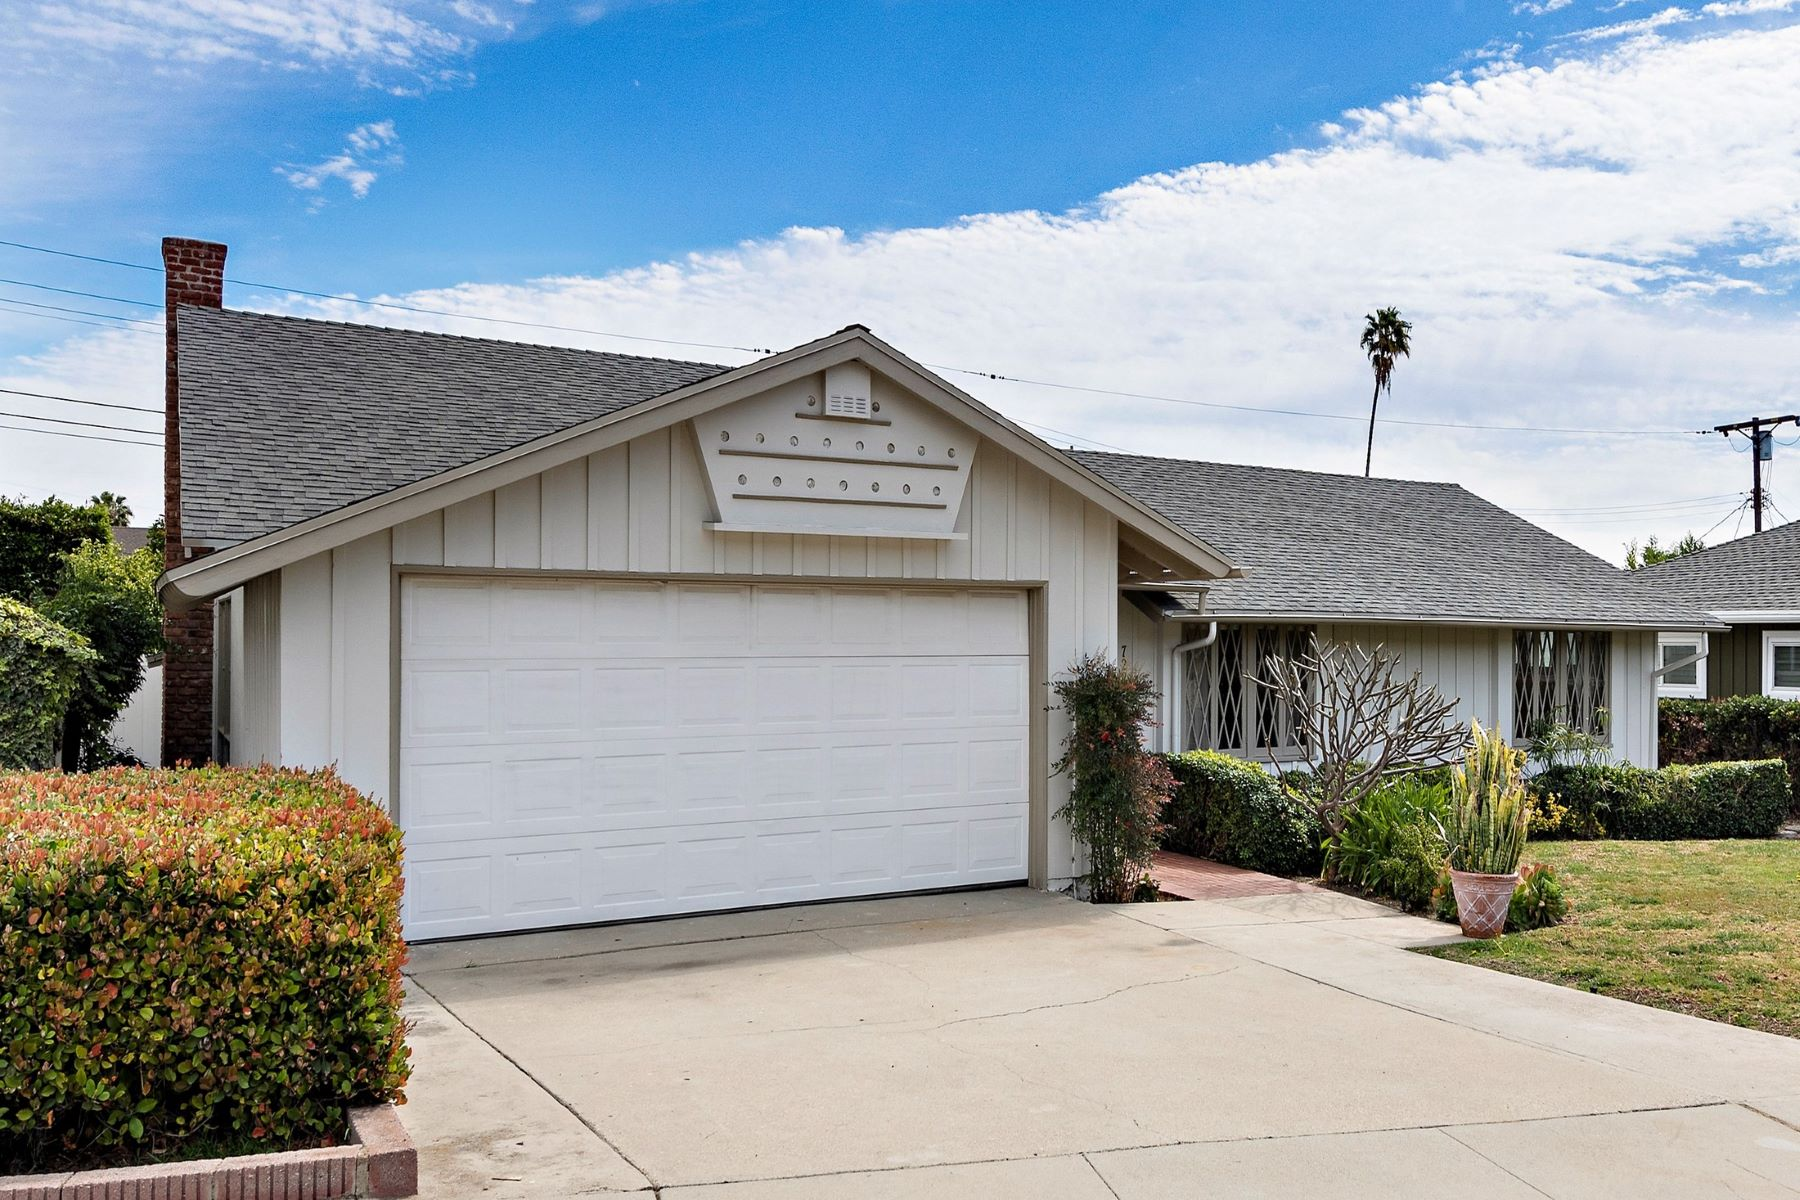 Single Family Homes for Active at 722 S Melgren Avenue, San Pedro 722 S Malgren Avenue San Pedro, California 90732 United States